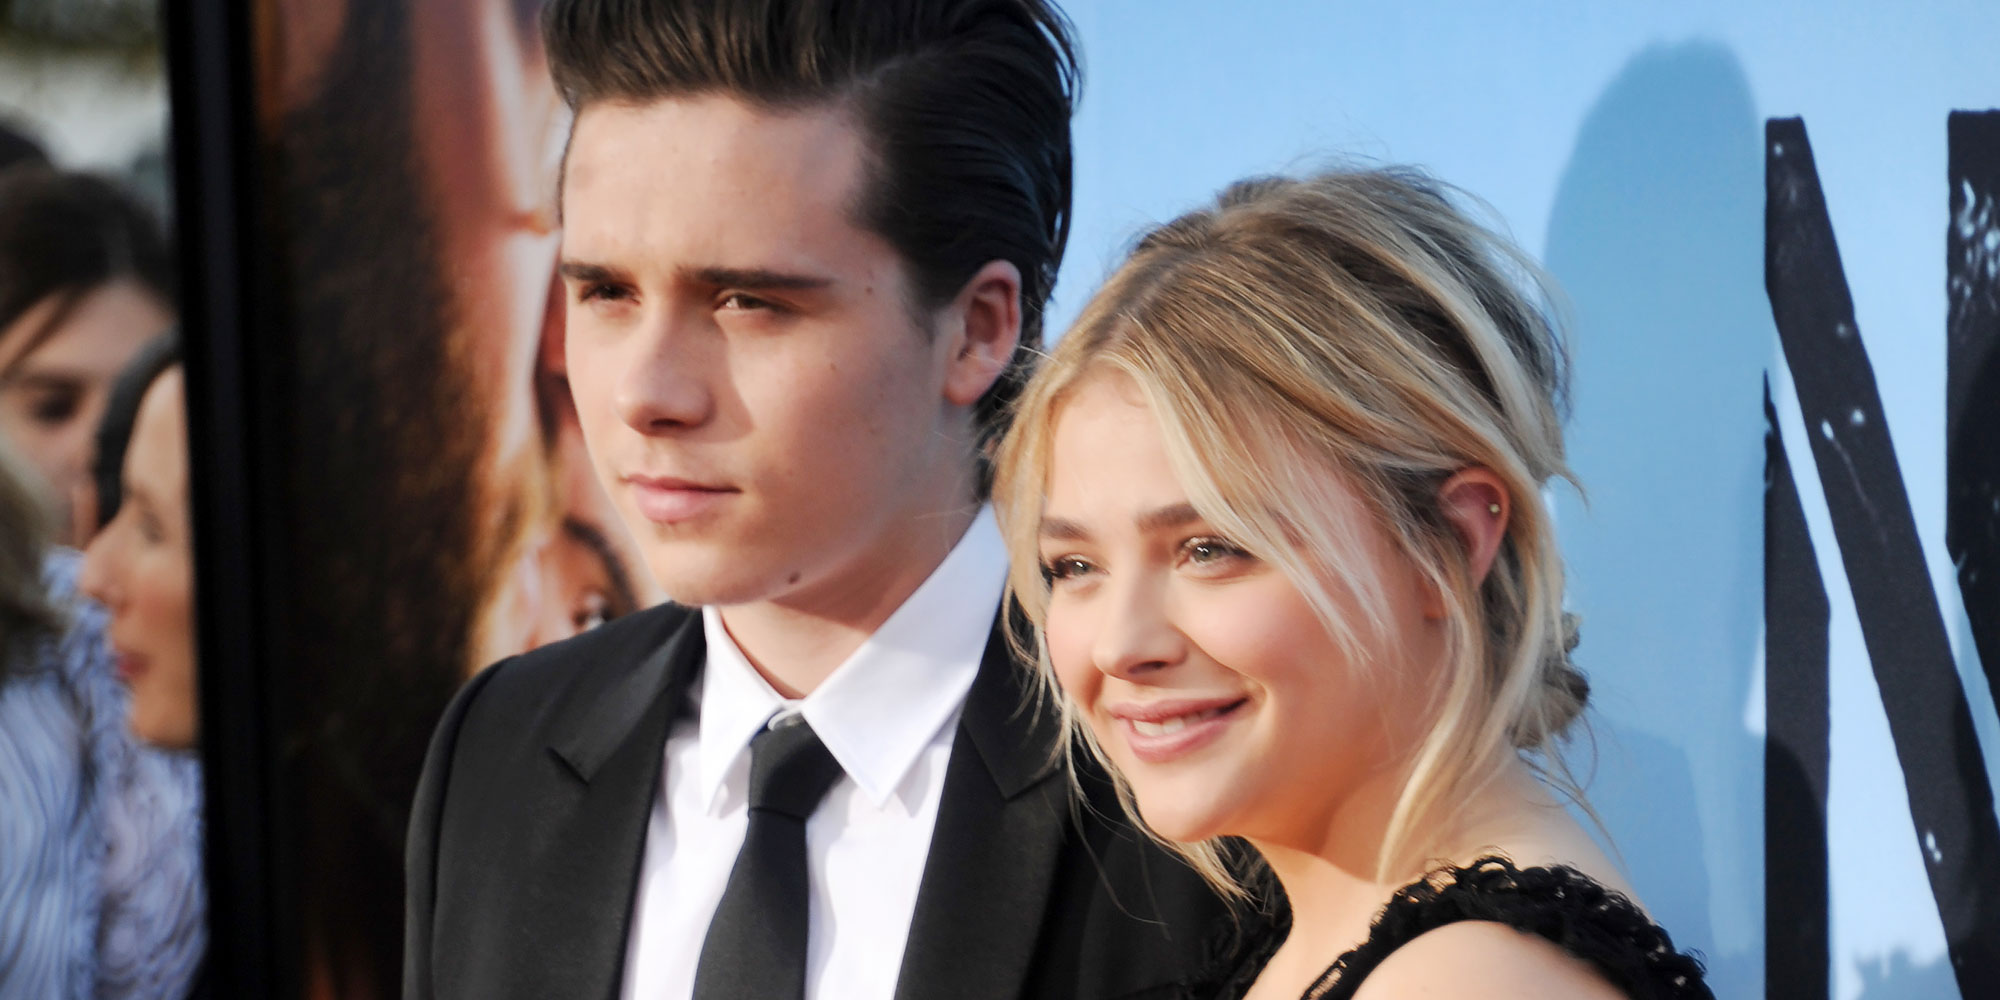 chloe moretz dating history Join one of the best chloe grace moretz dating list for lonely  chloe moretz dating  chloë grace moretz dating history, chloe grace moretz dating list,list.